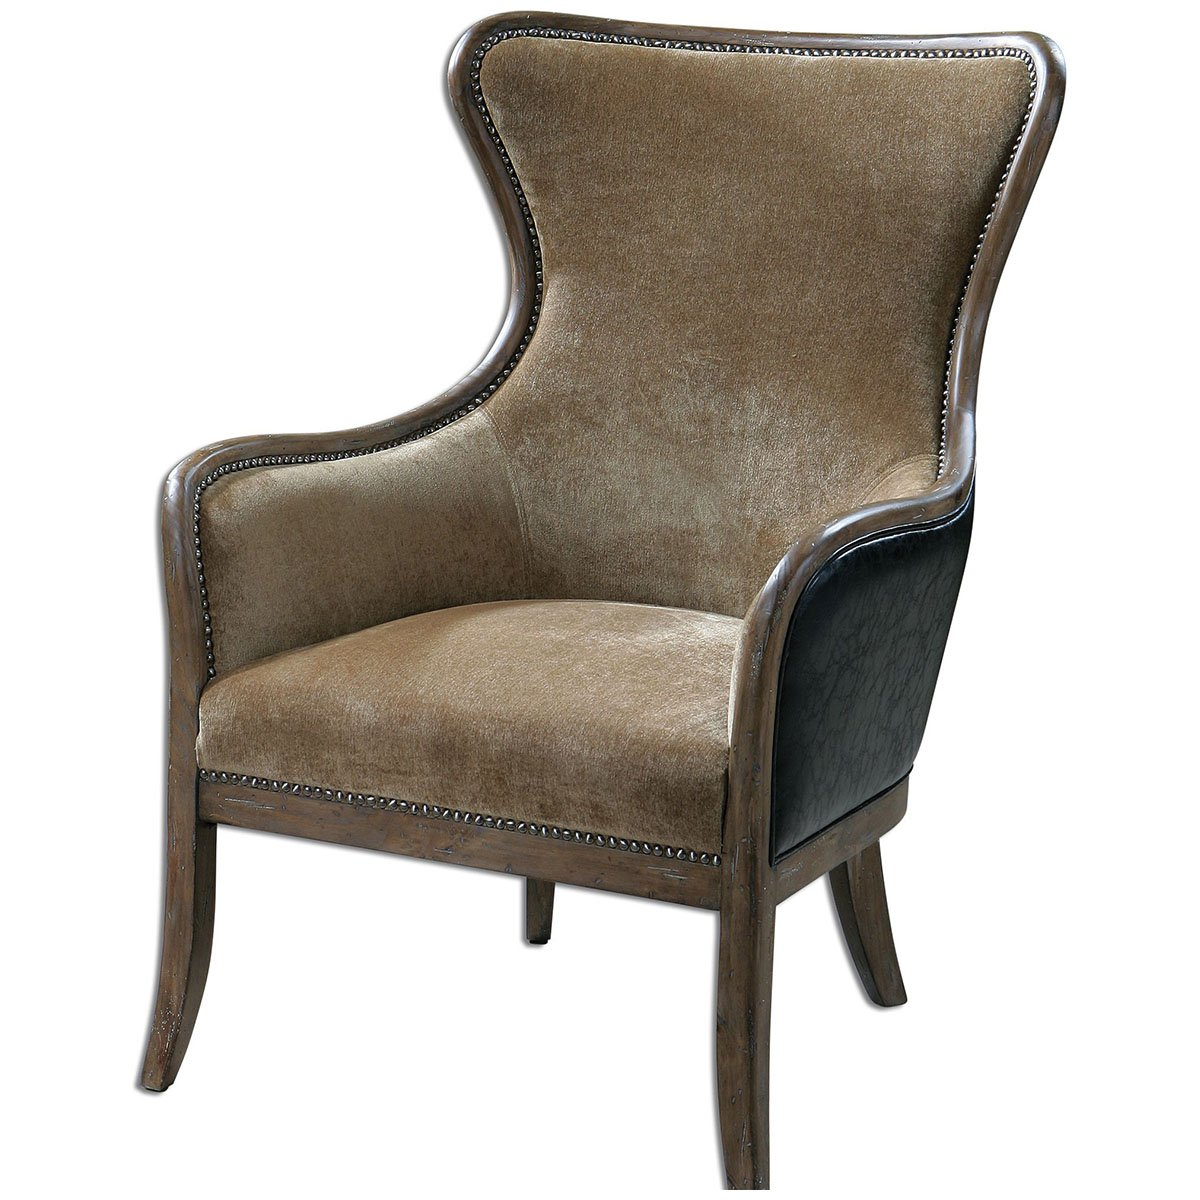 chair gracie deco royal chairs product wing home blue kuo detail velvet art kathy classic